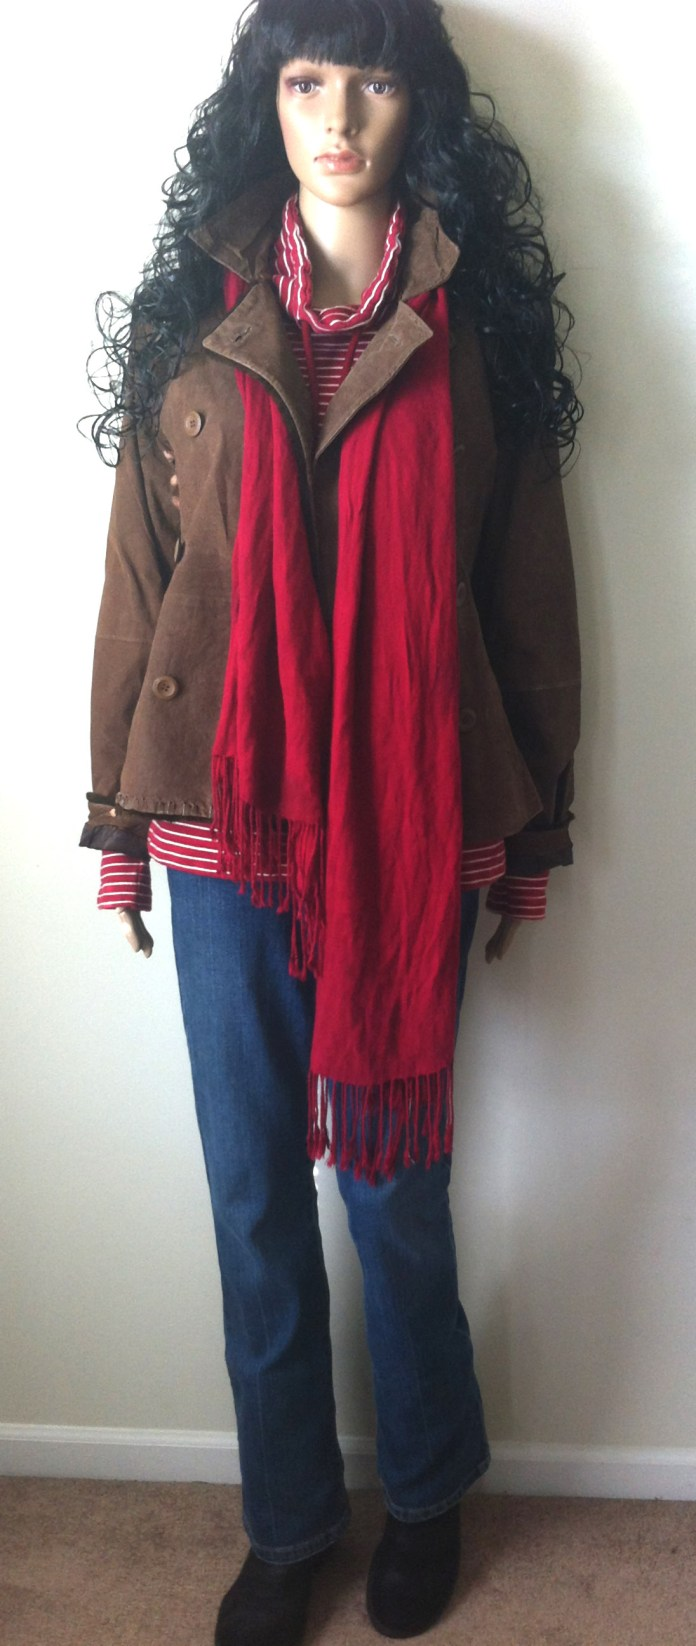 red white striped top brown leather jacket blue jeans black suede buckle boots